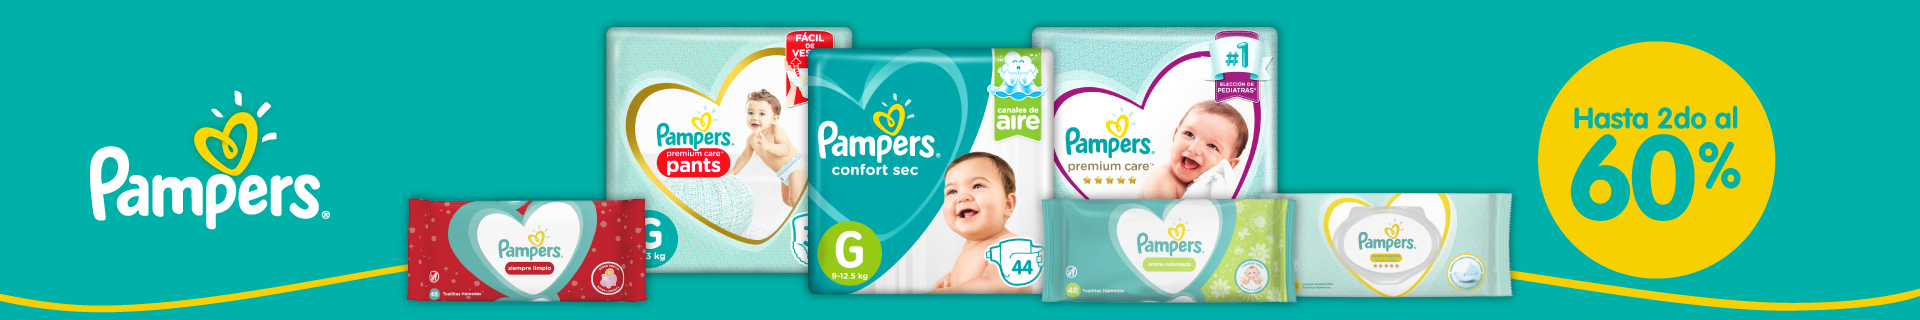 [PAMPERS] SEPTIEMBRE